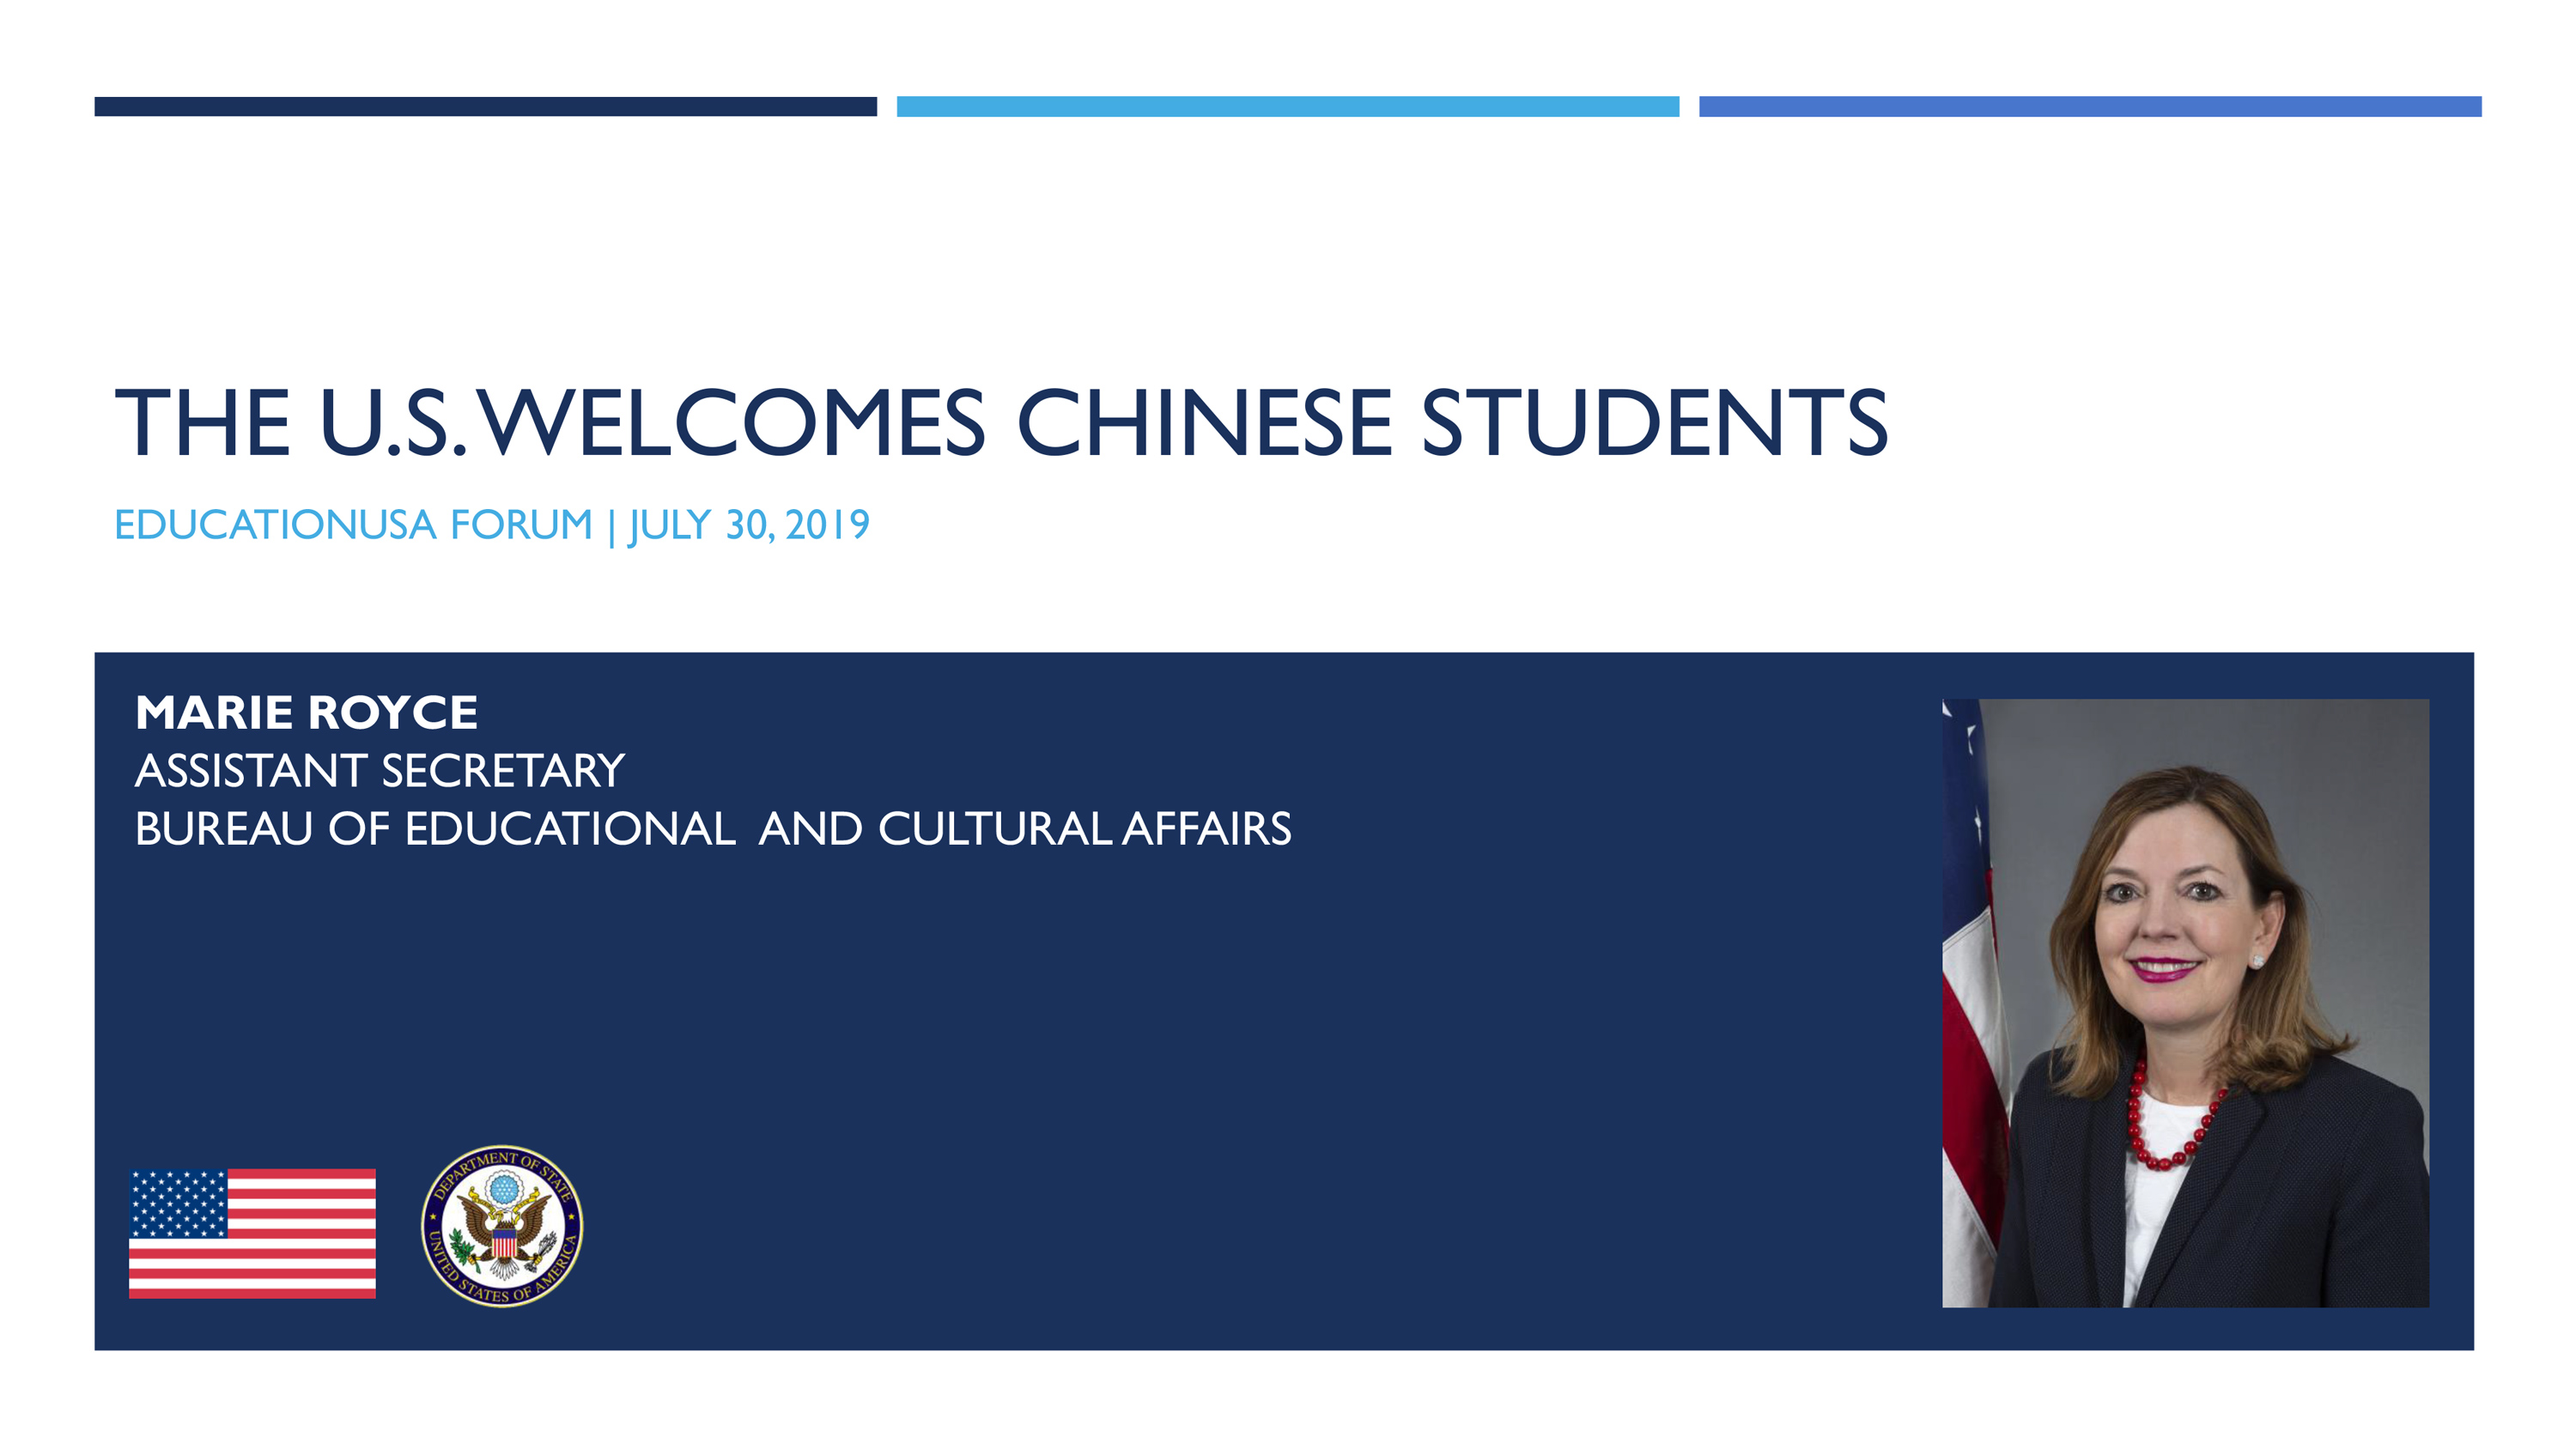 The U.S. Welcomes Chinese Students